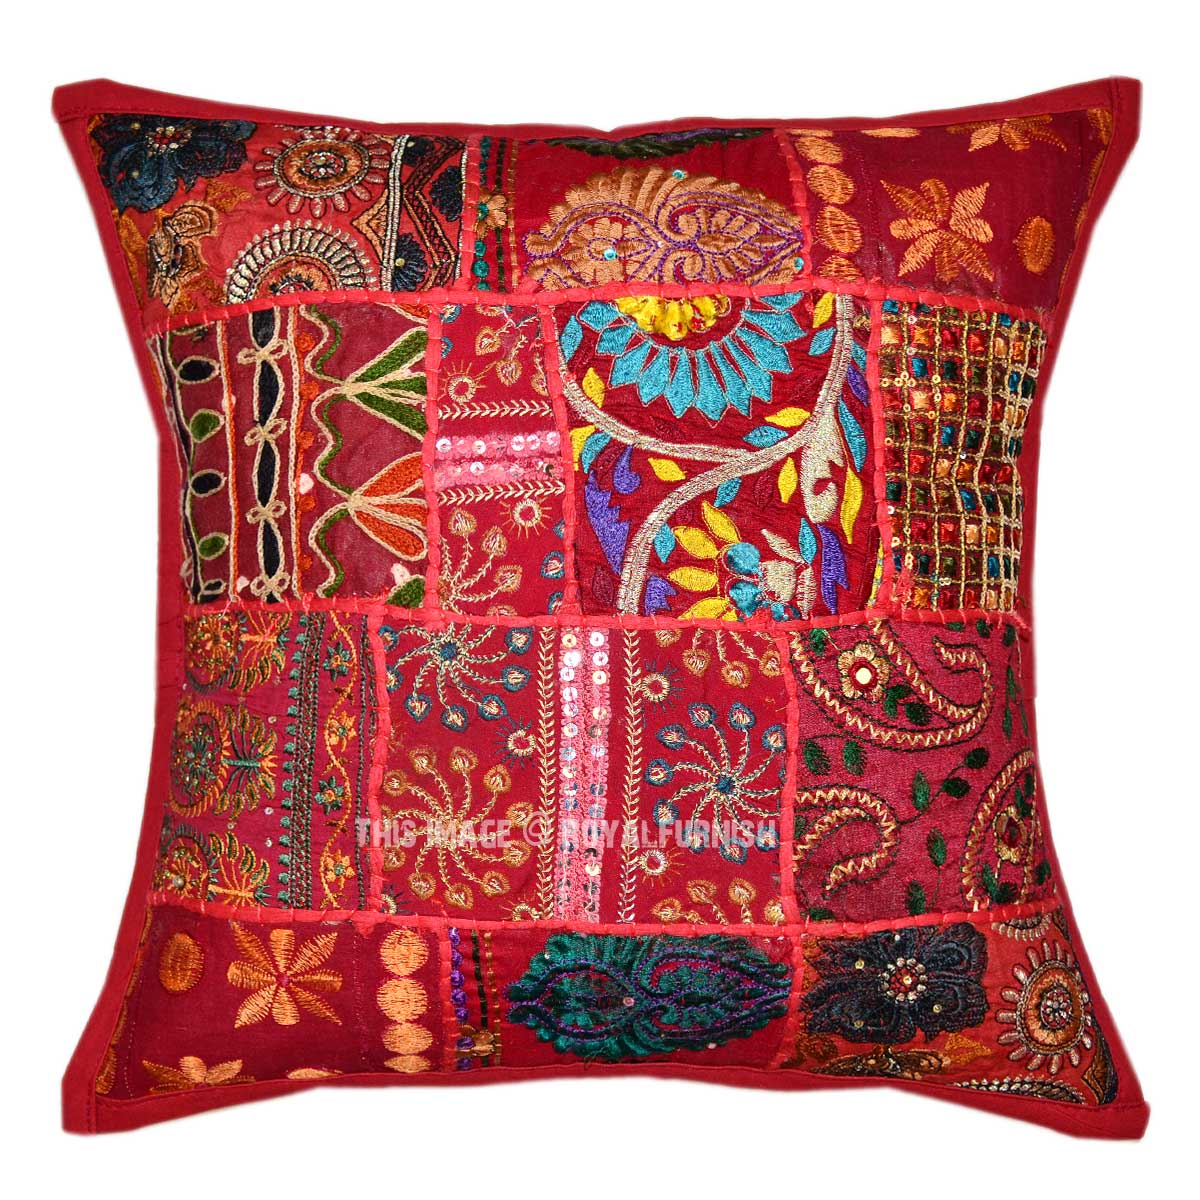 Unique Decorative Accent Pillows : Decorative Boho Accent Unique Pretty Patchwork 16X16 Square Throw Pillow Cover - RoyalFurnish.com